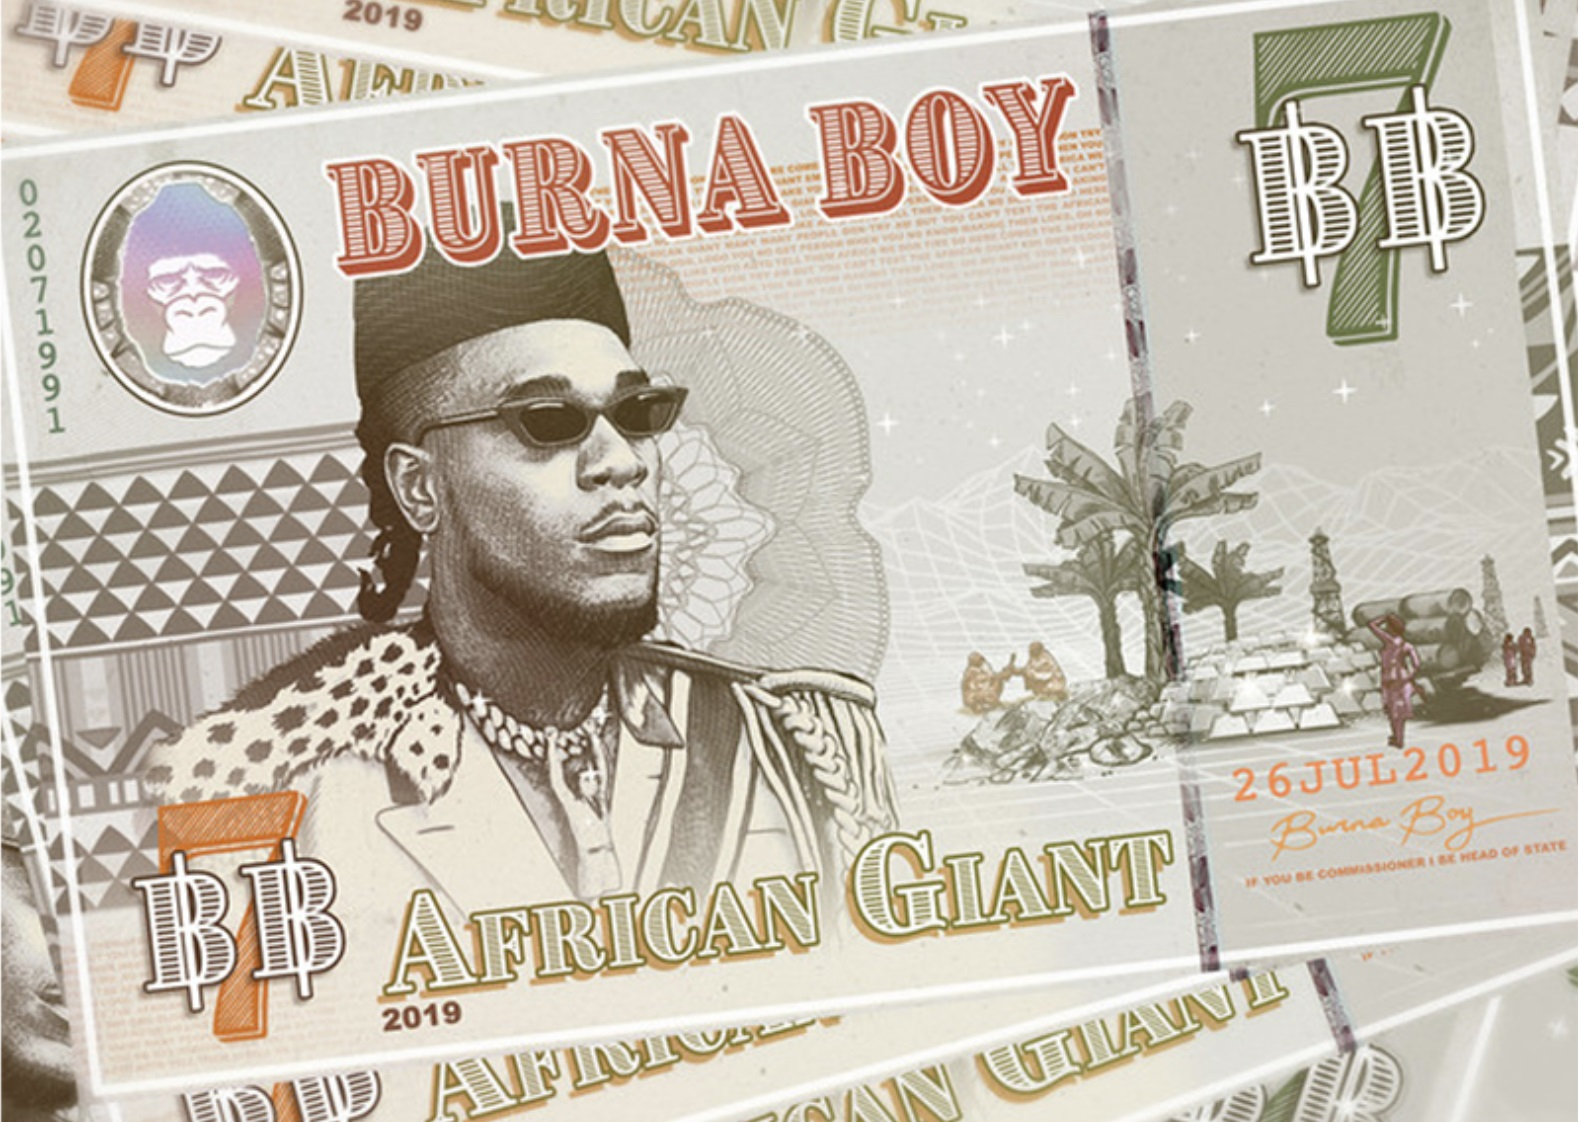 Burna Boy's 'African Giant' Becomes The 1st Certified Naija Album in The UK!